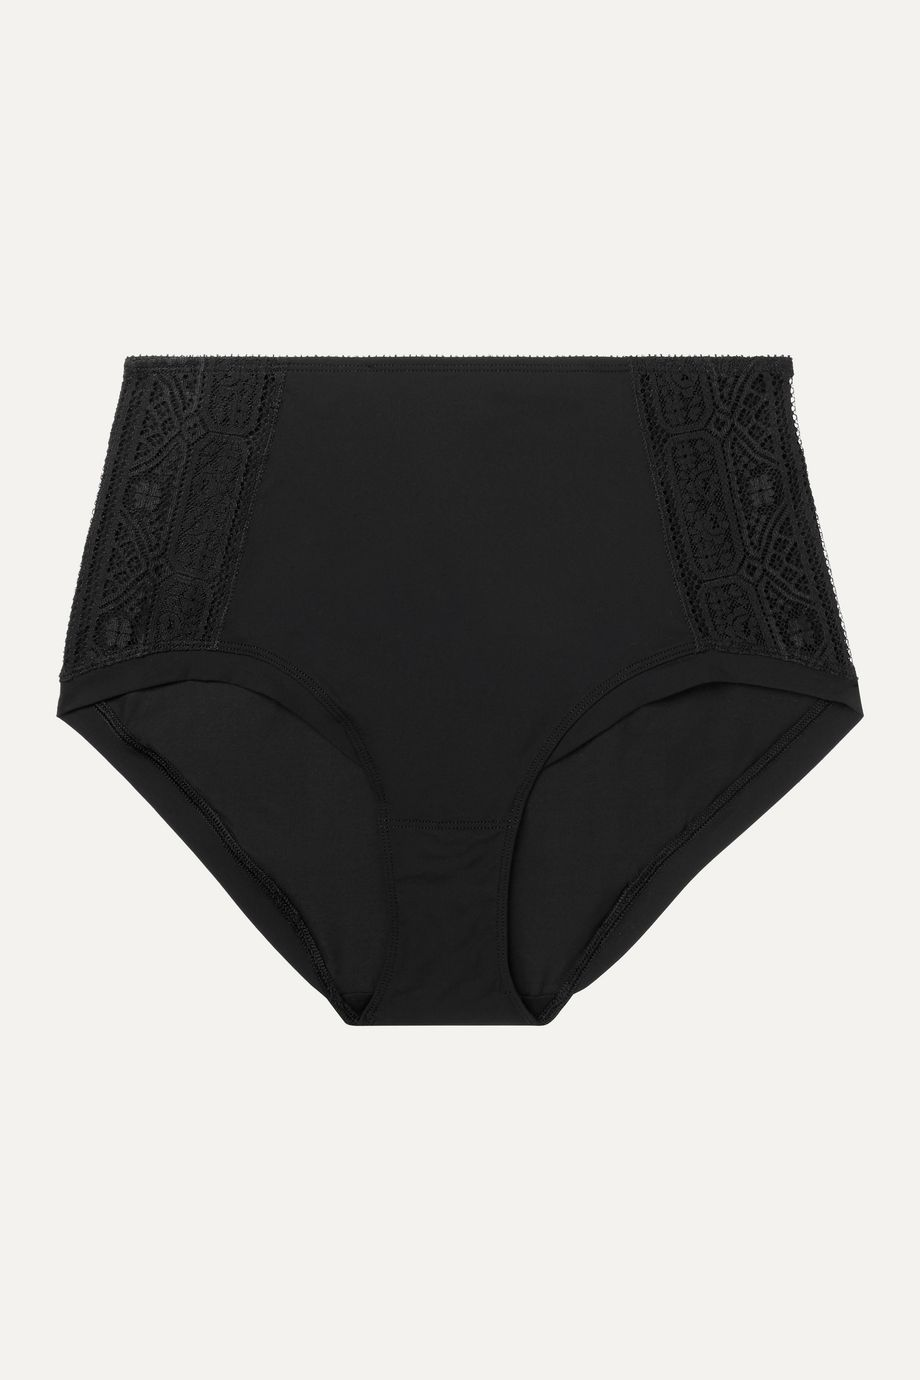 Eres Caraco Jupon lace-trimmed stretch-jersey briefs